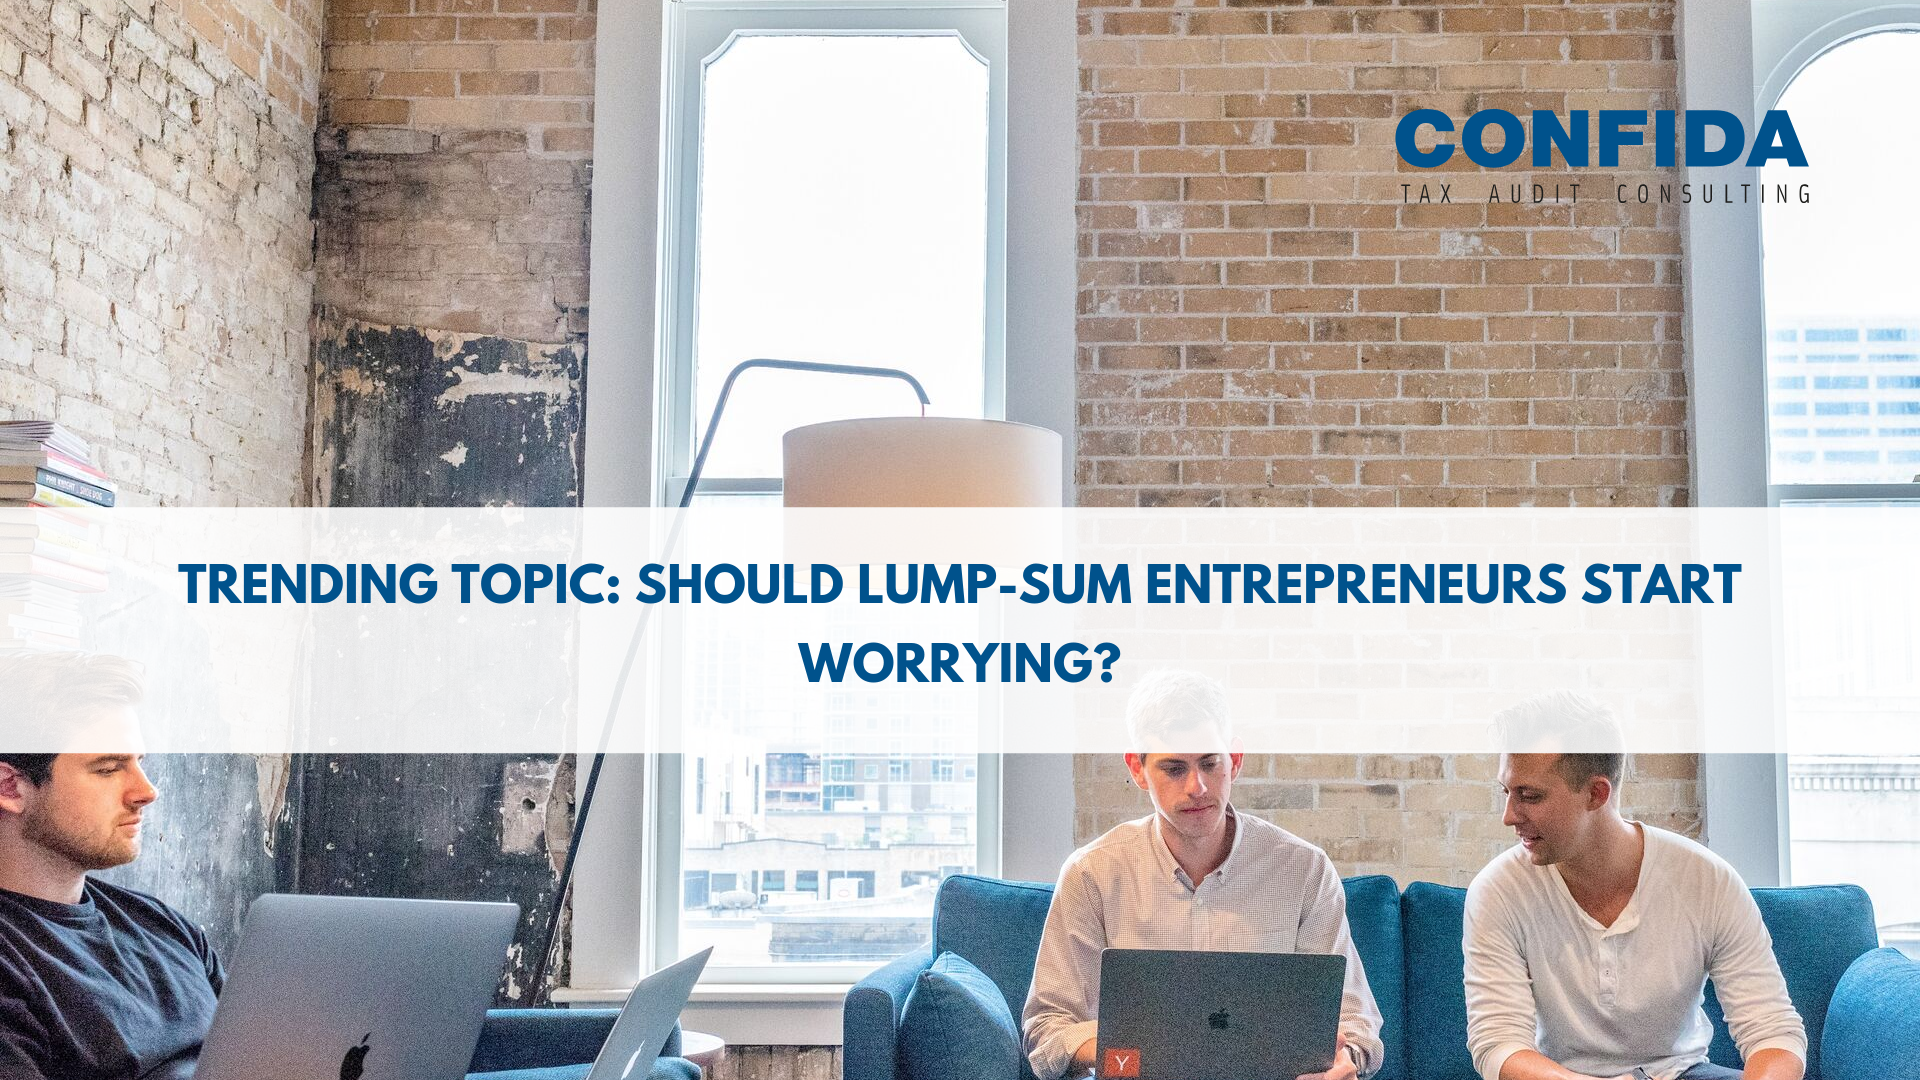 Trending topic | Should lump-sum entrepreneurs start worrying?